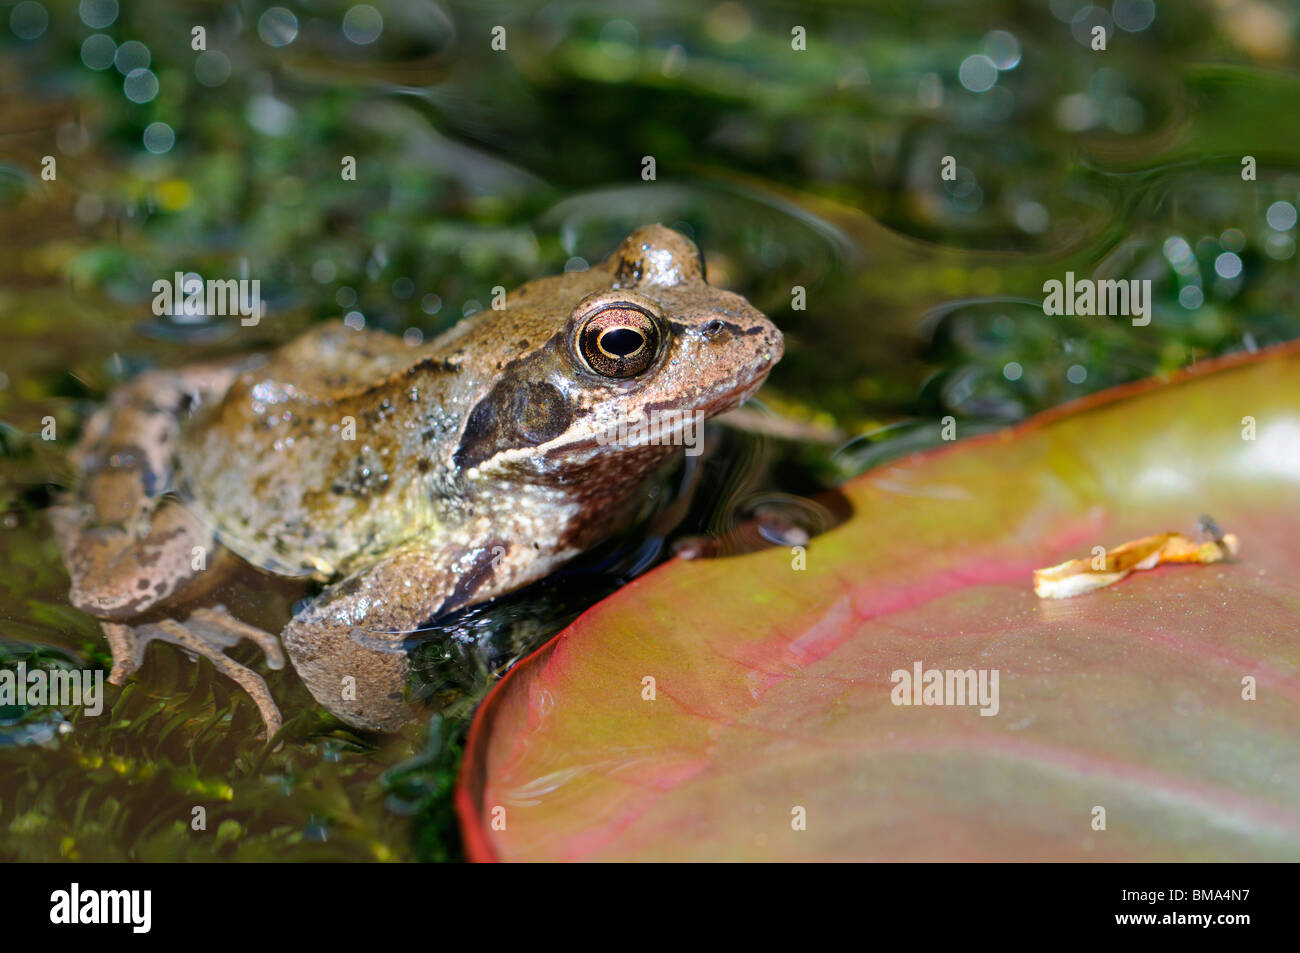 Common Frog (Rana temporaria) adult in garden pond. Kent, UK, May. - Stock Image